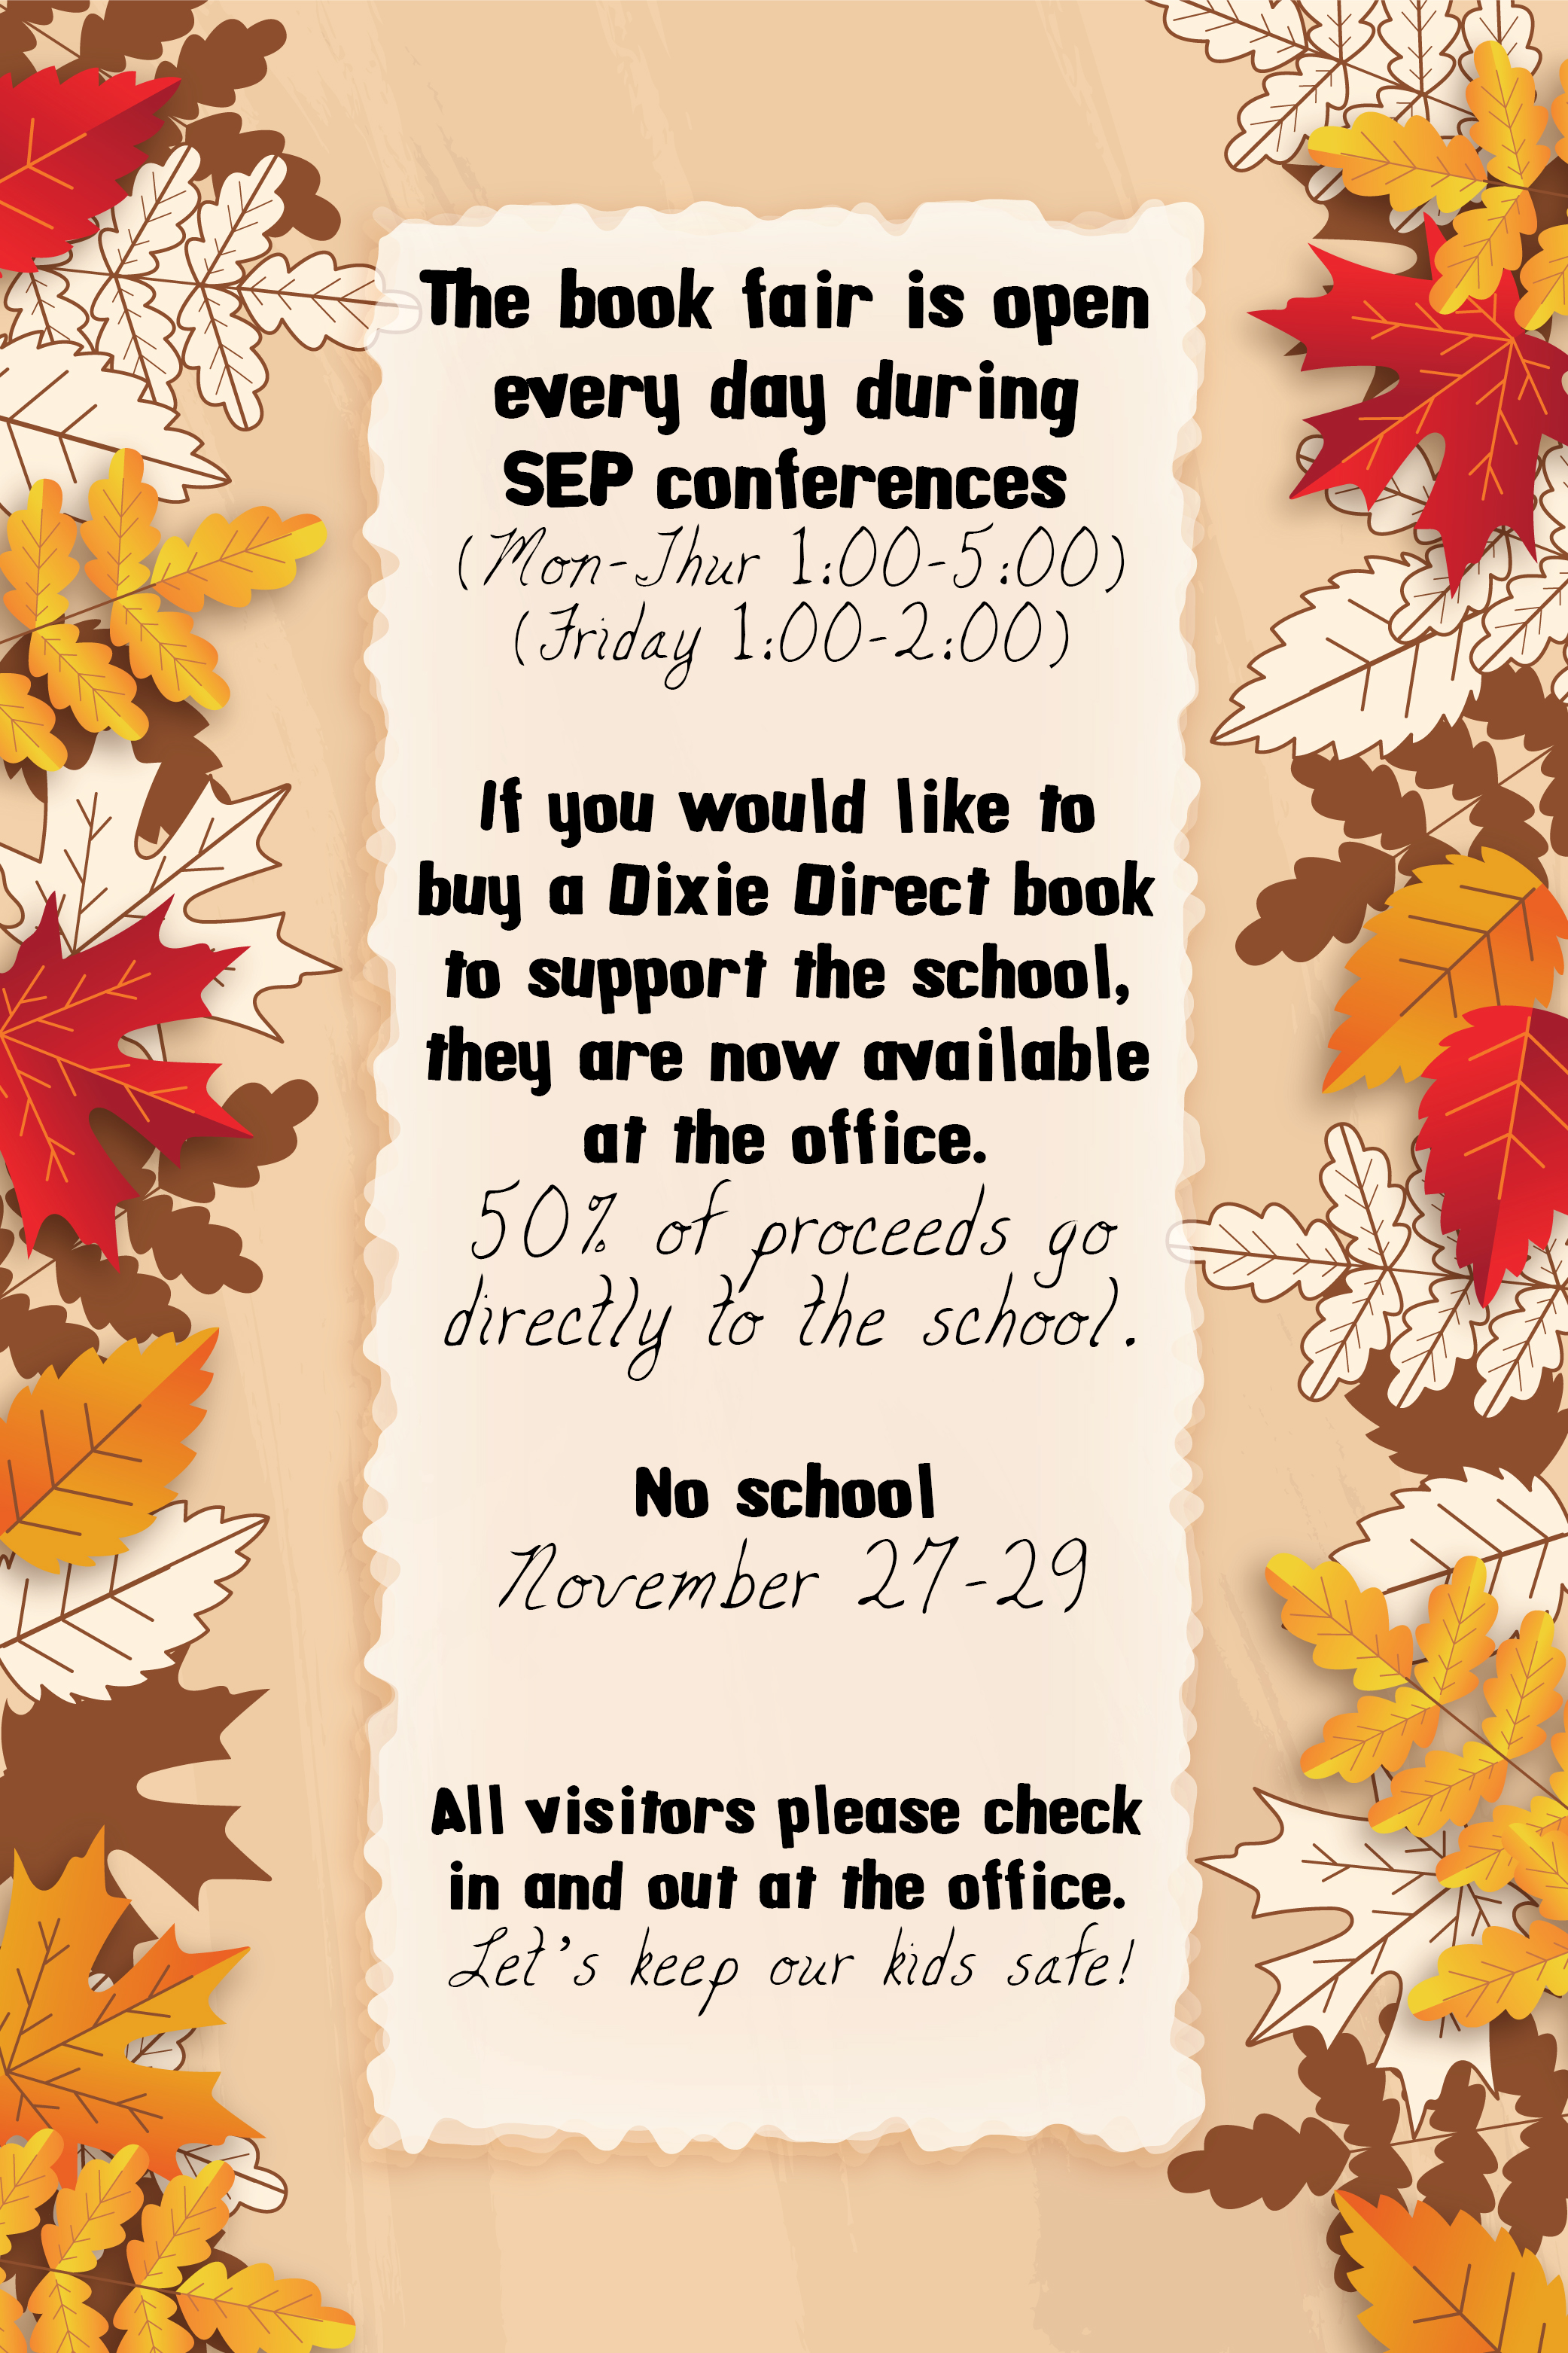 Autumn leaf background with the following text: The book fair is open every day during  SEP conferences (Mon-Thur 1:00-5:00) (Friday 1:00-2:00)   If you would like to buy a Dixie Direct book to support the school, they are now available at the office. 50% of proceeds go directly to the school.  No school November 27-29   All visitors please check in and out at the office. Let's keep our kids safe!